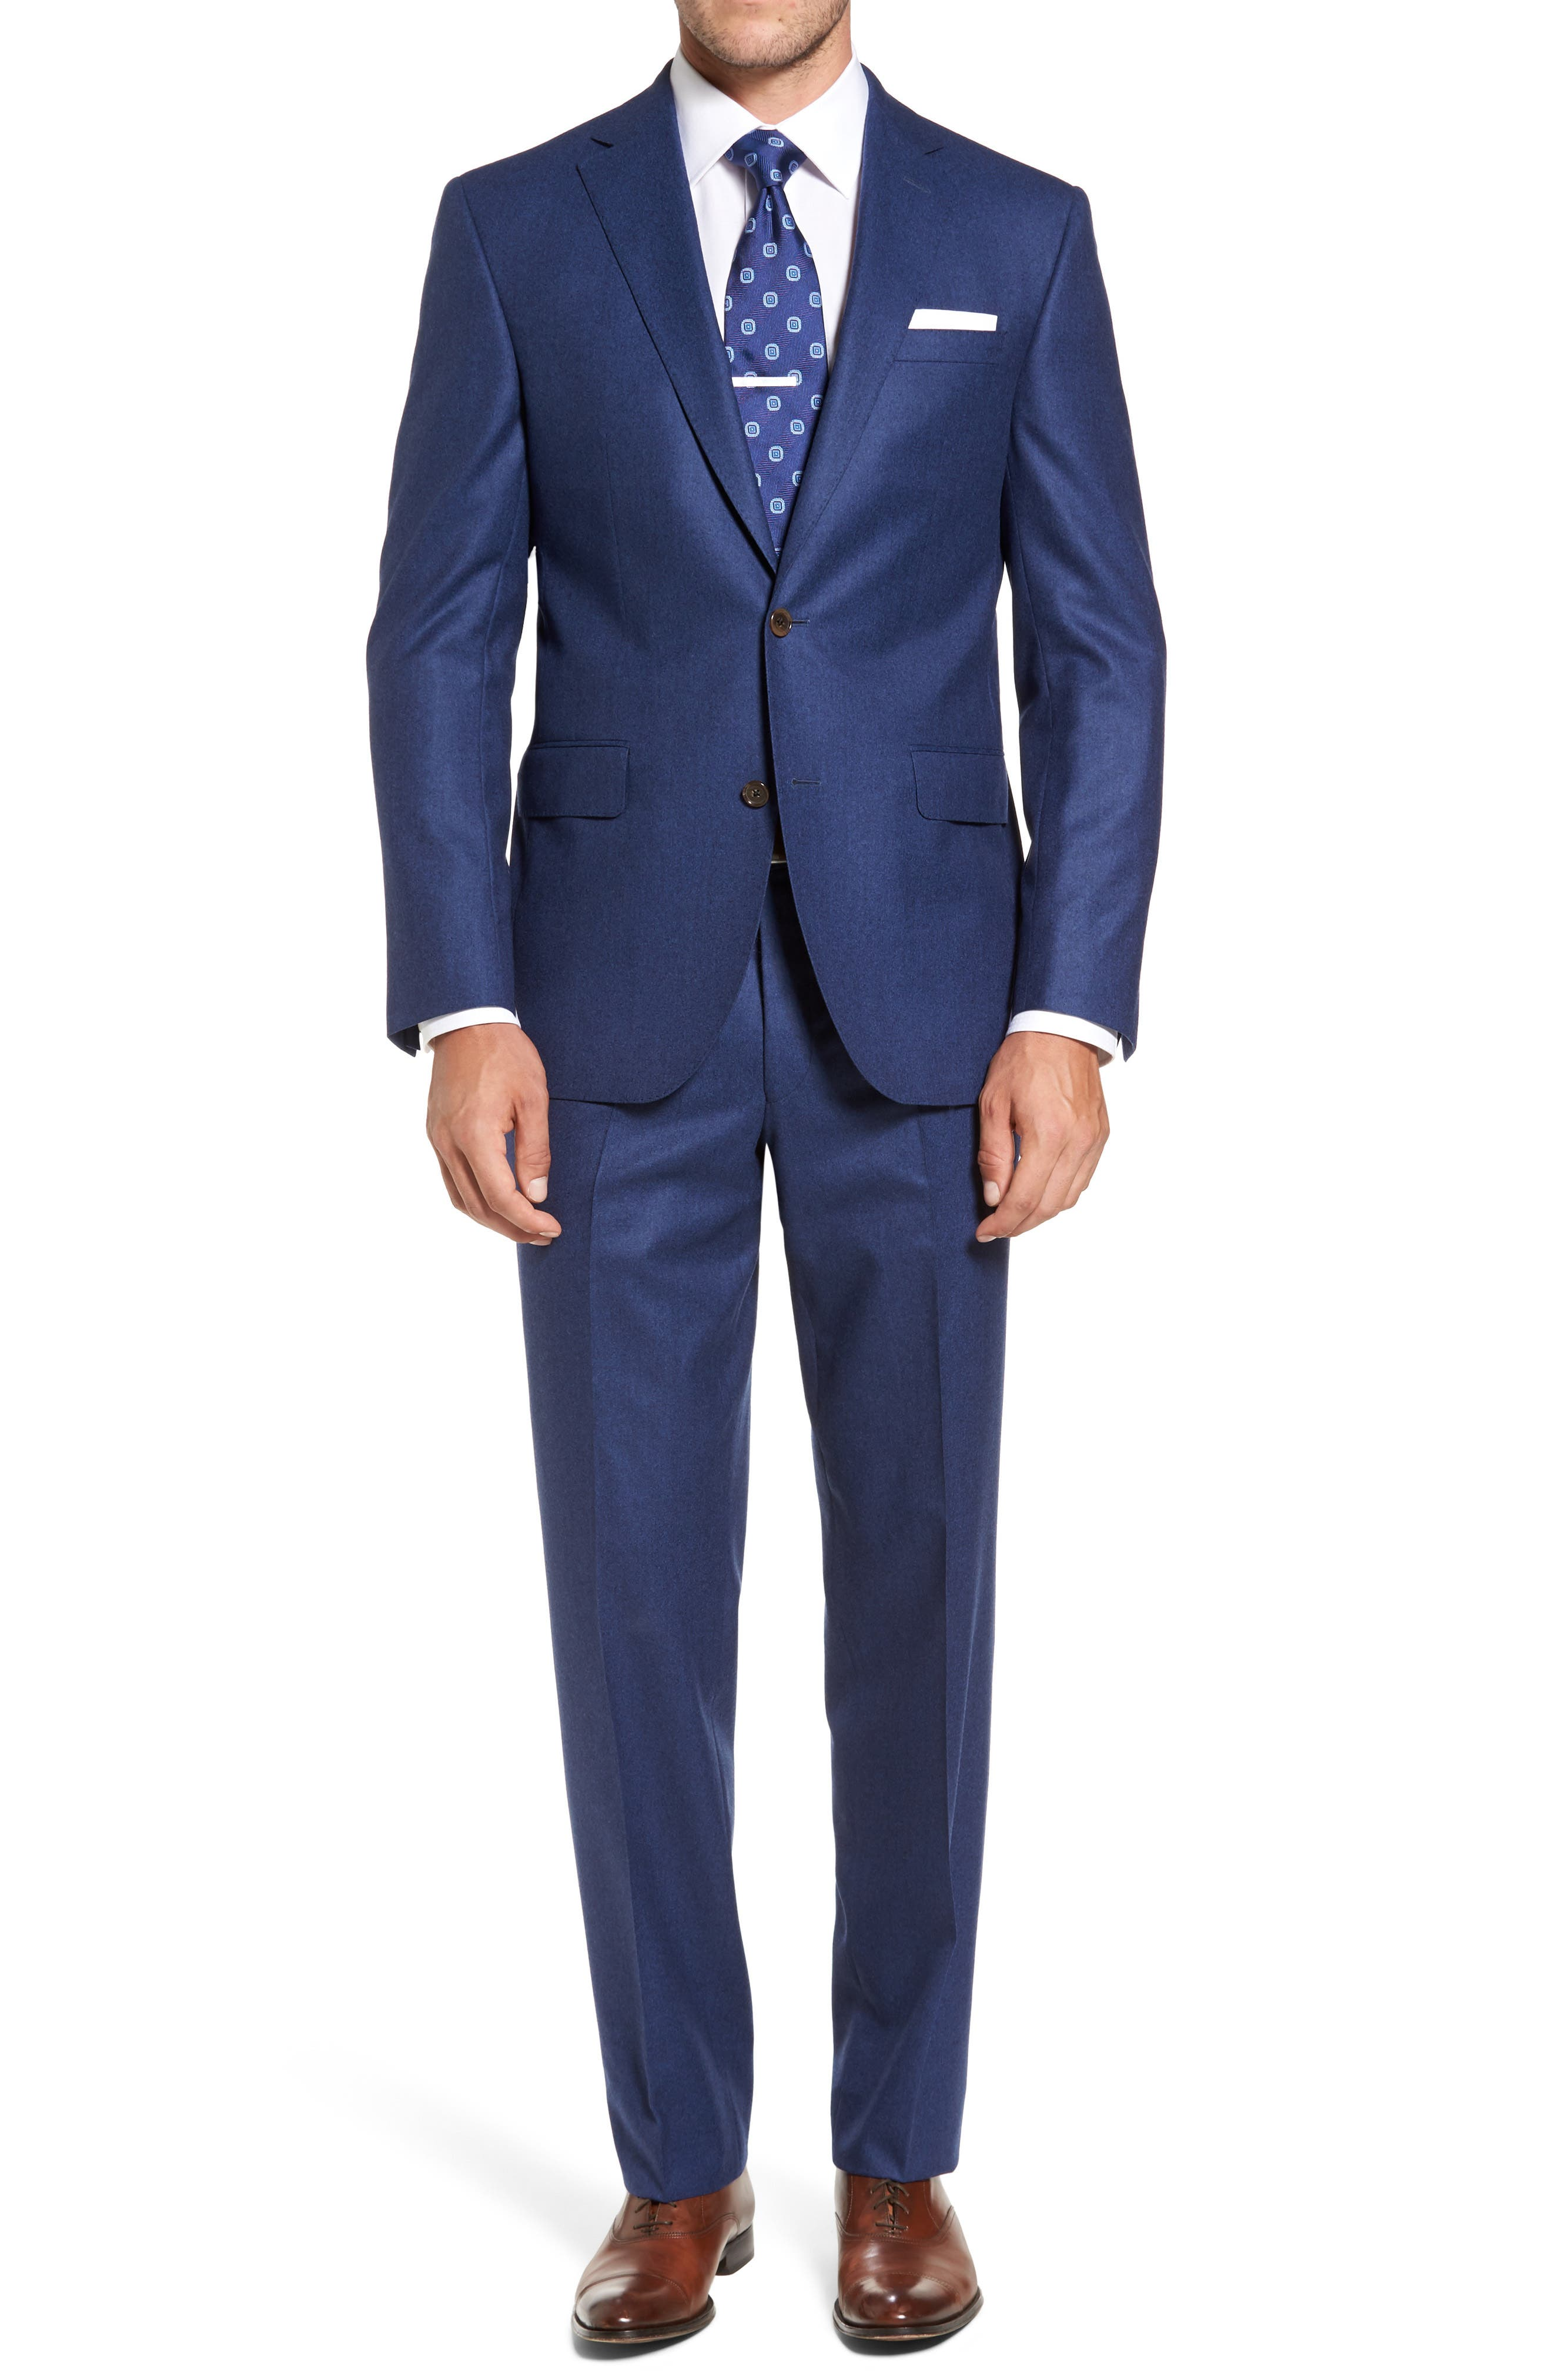 Main Image - David Donahue Ryan Classic Fit Solid Wool Suit